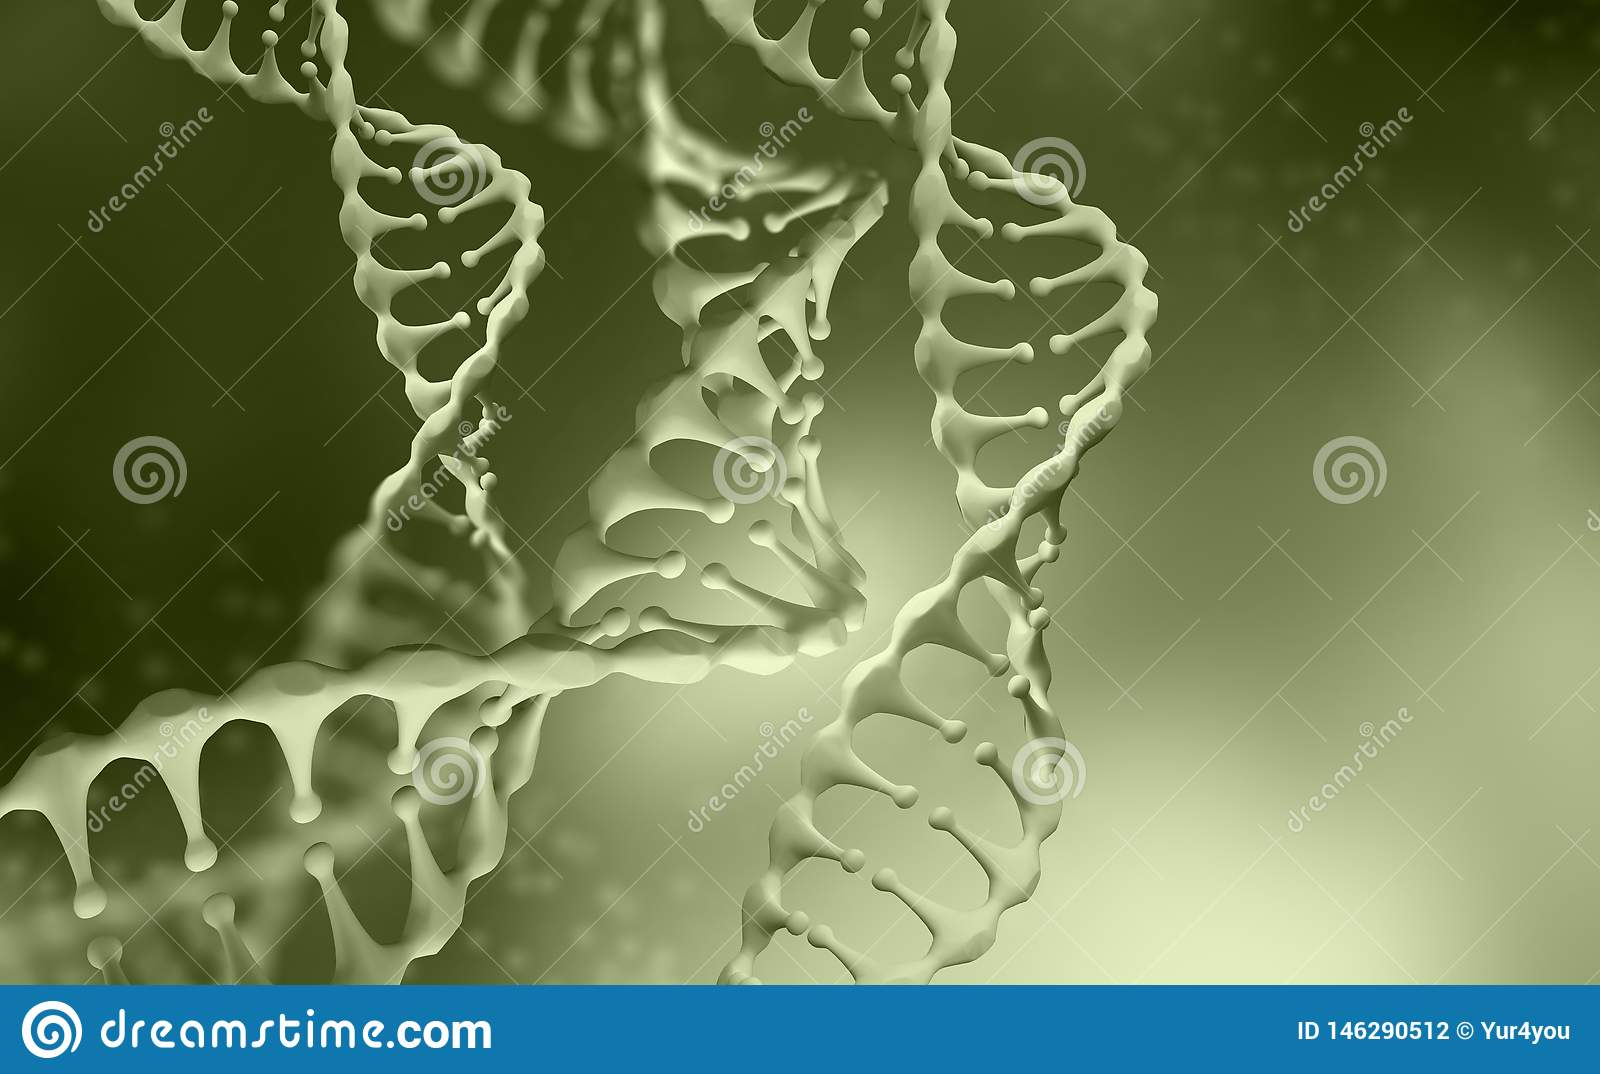 DNA Genome Research  DNA Molecule Structure  3D Double Helix